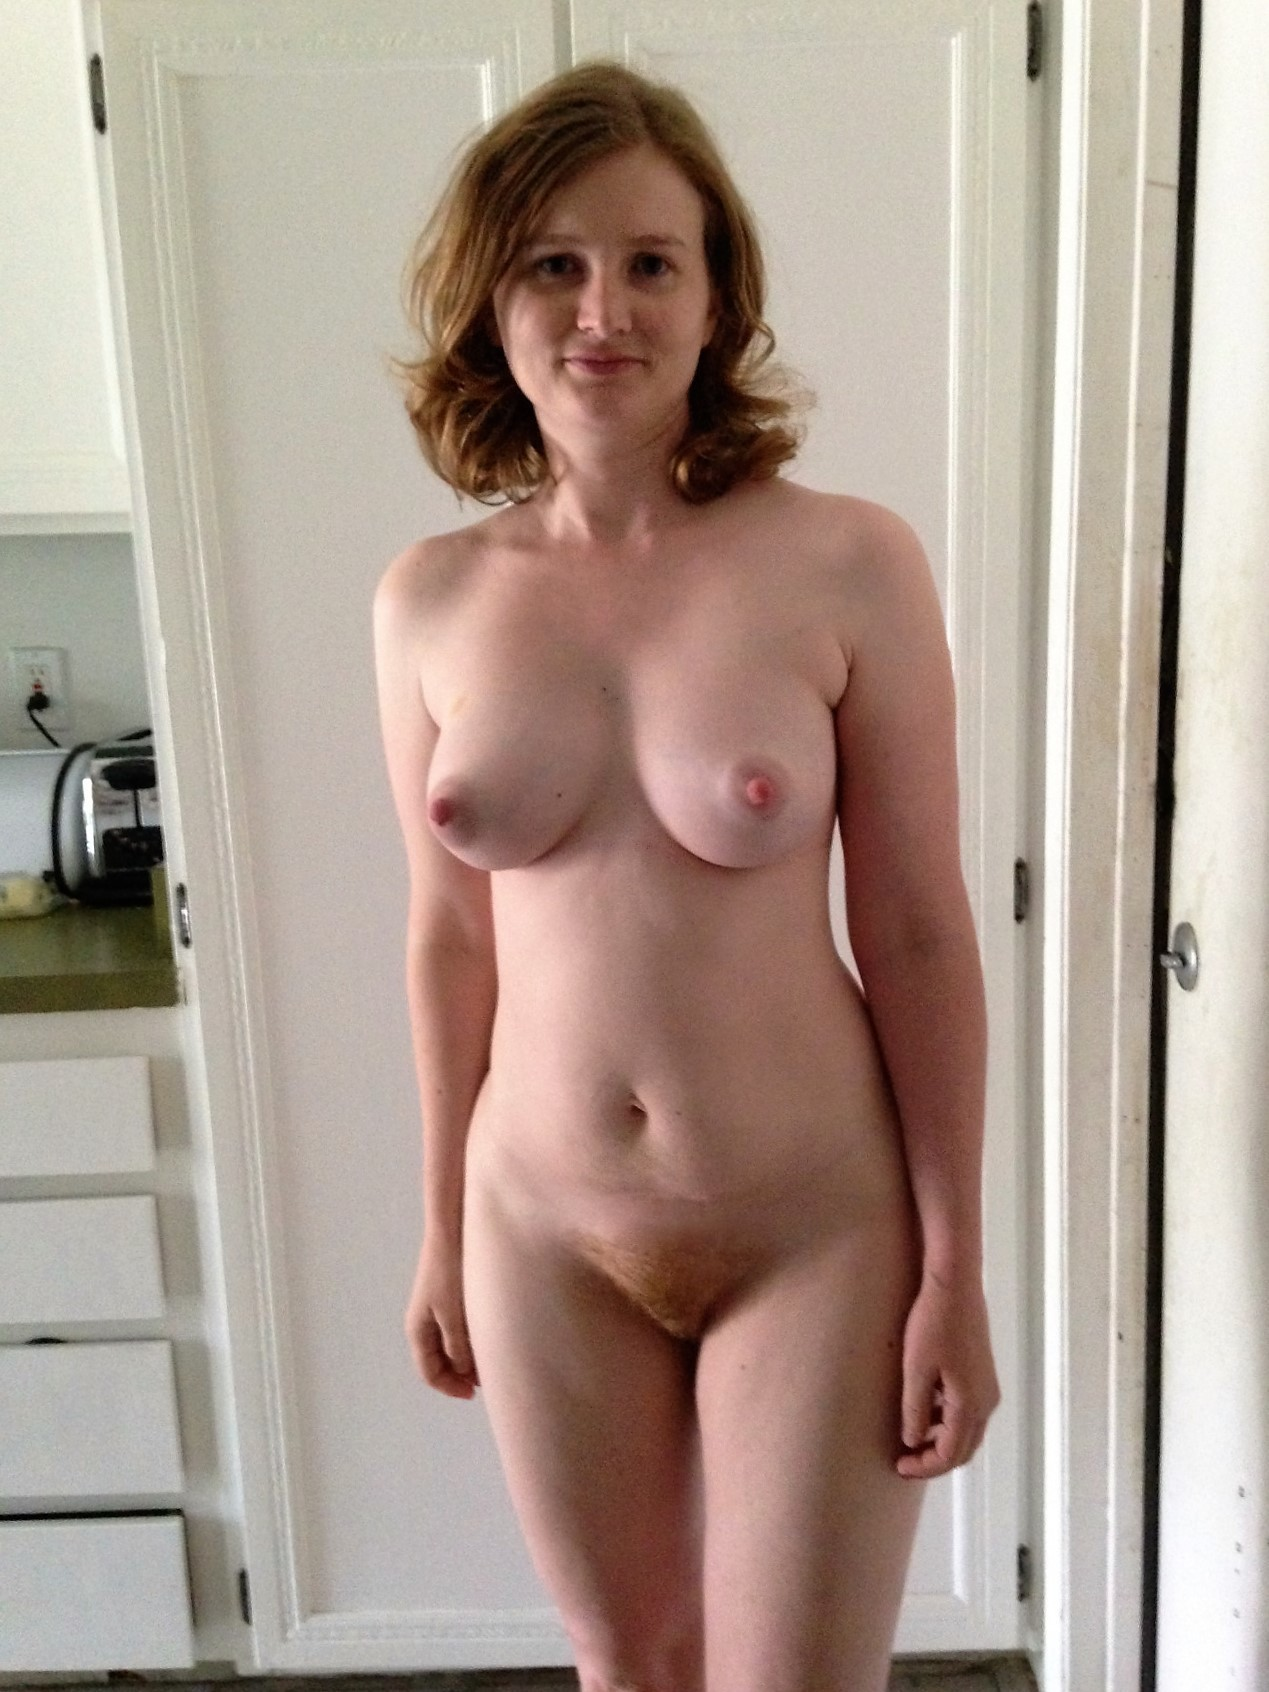 You sexy milf gallery congratulate, what necessary